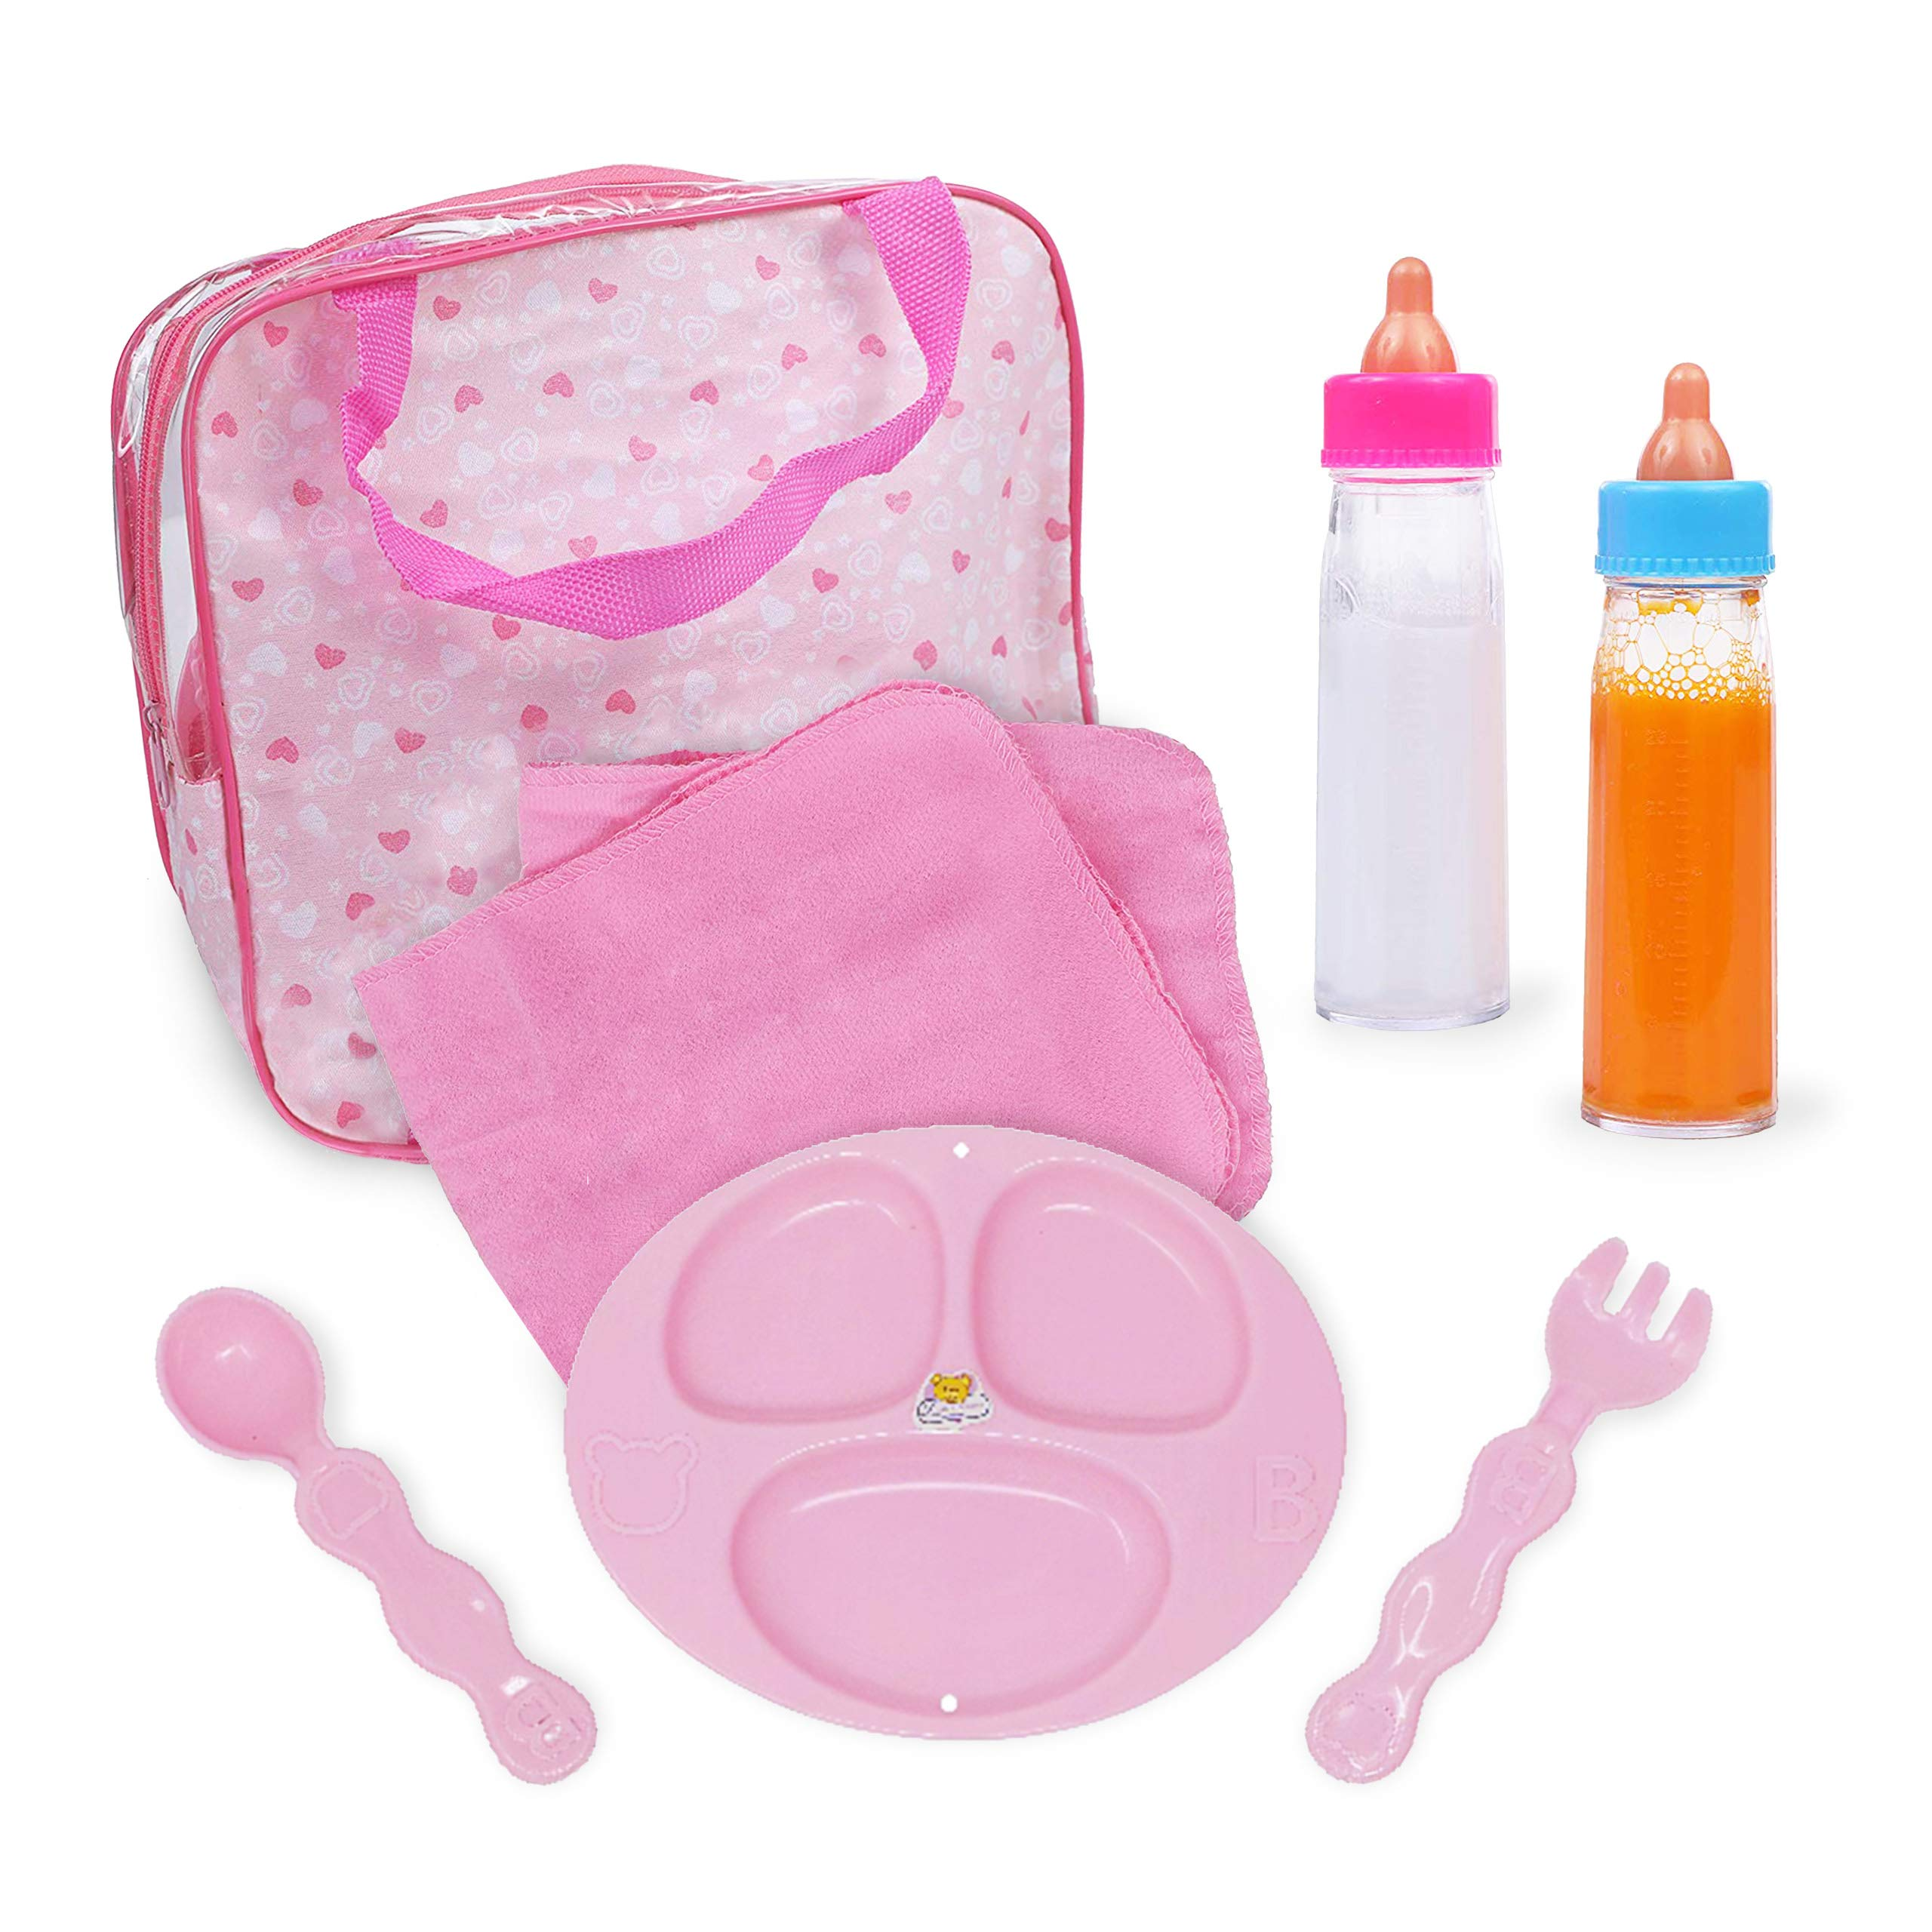 Mommy & Me Baby Doll Accessories Feeding Care 7 Piece Set in a Bag, Includes Doll Magic Bottles